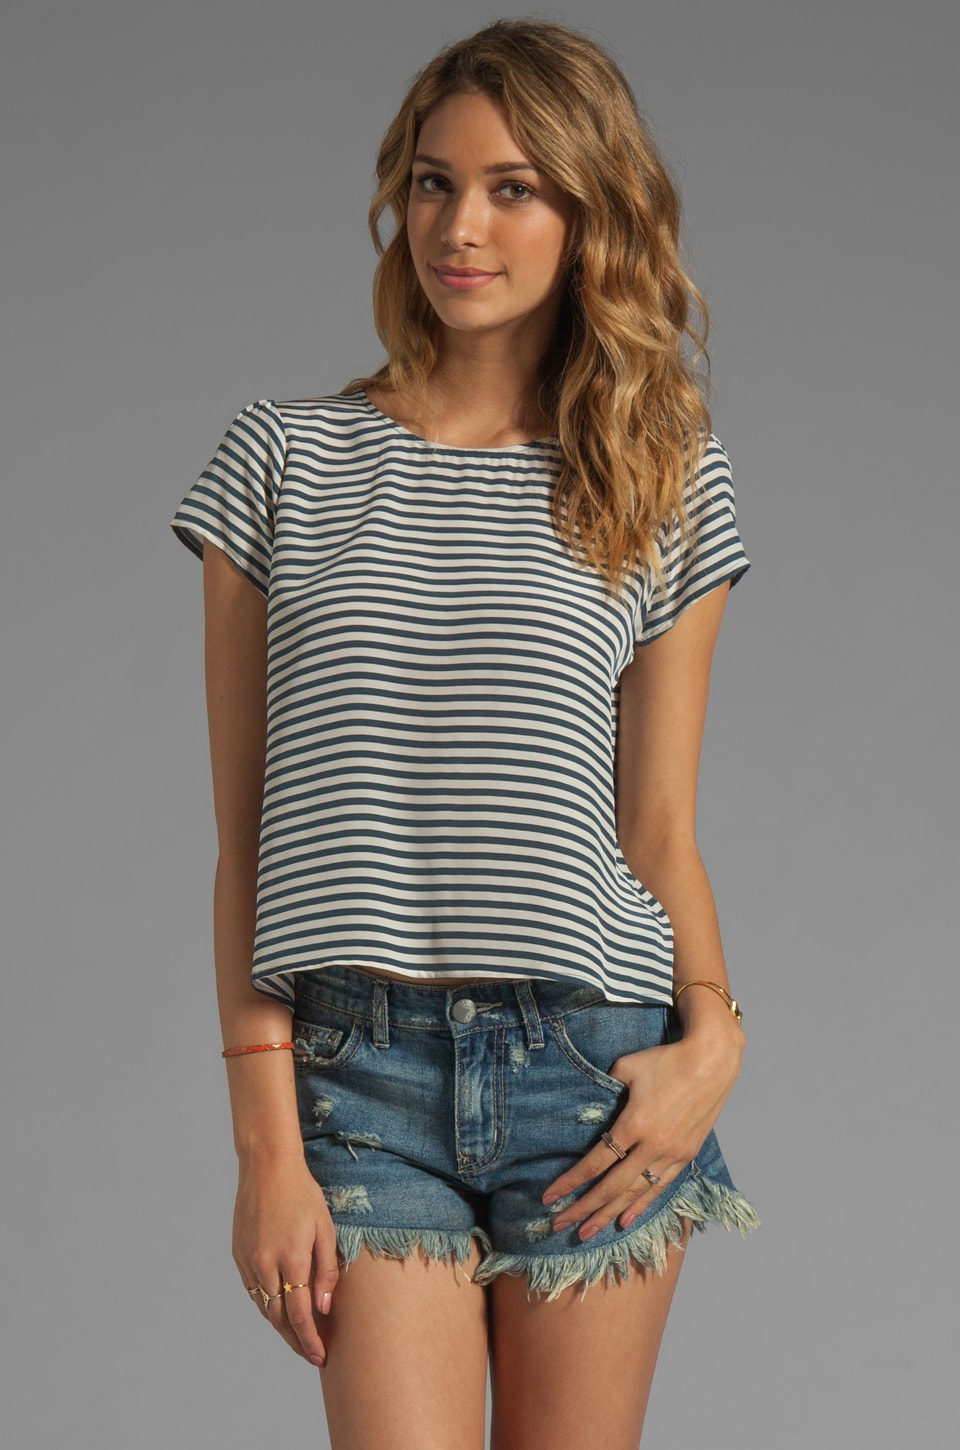 Paper Crown by Lauren Conrad Beam Blouse in Navy/Cream Stripe